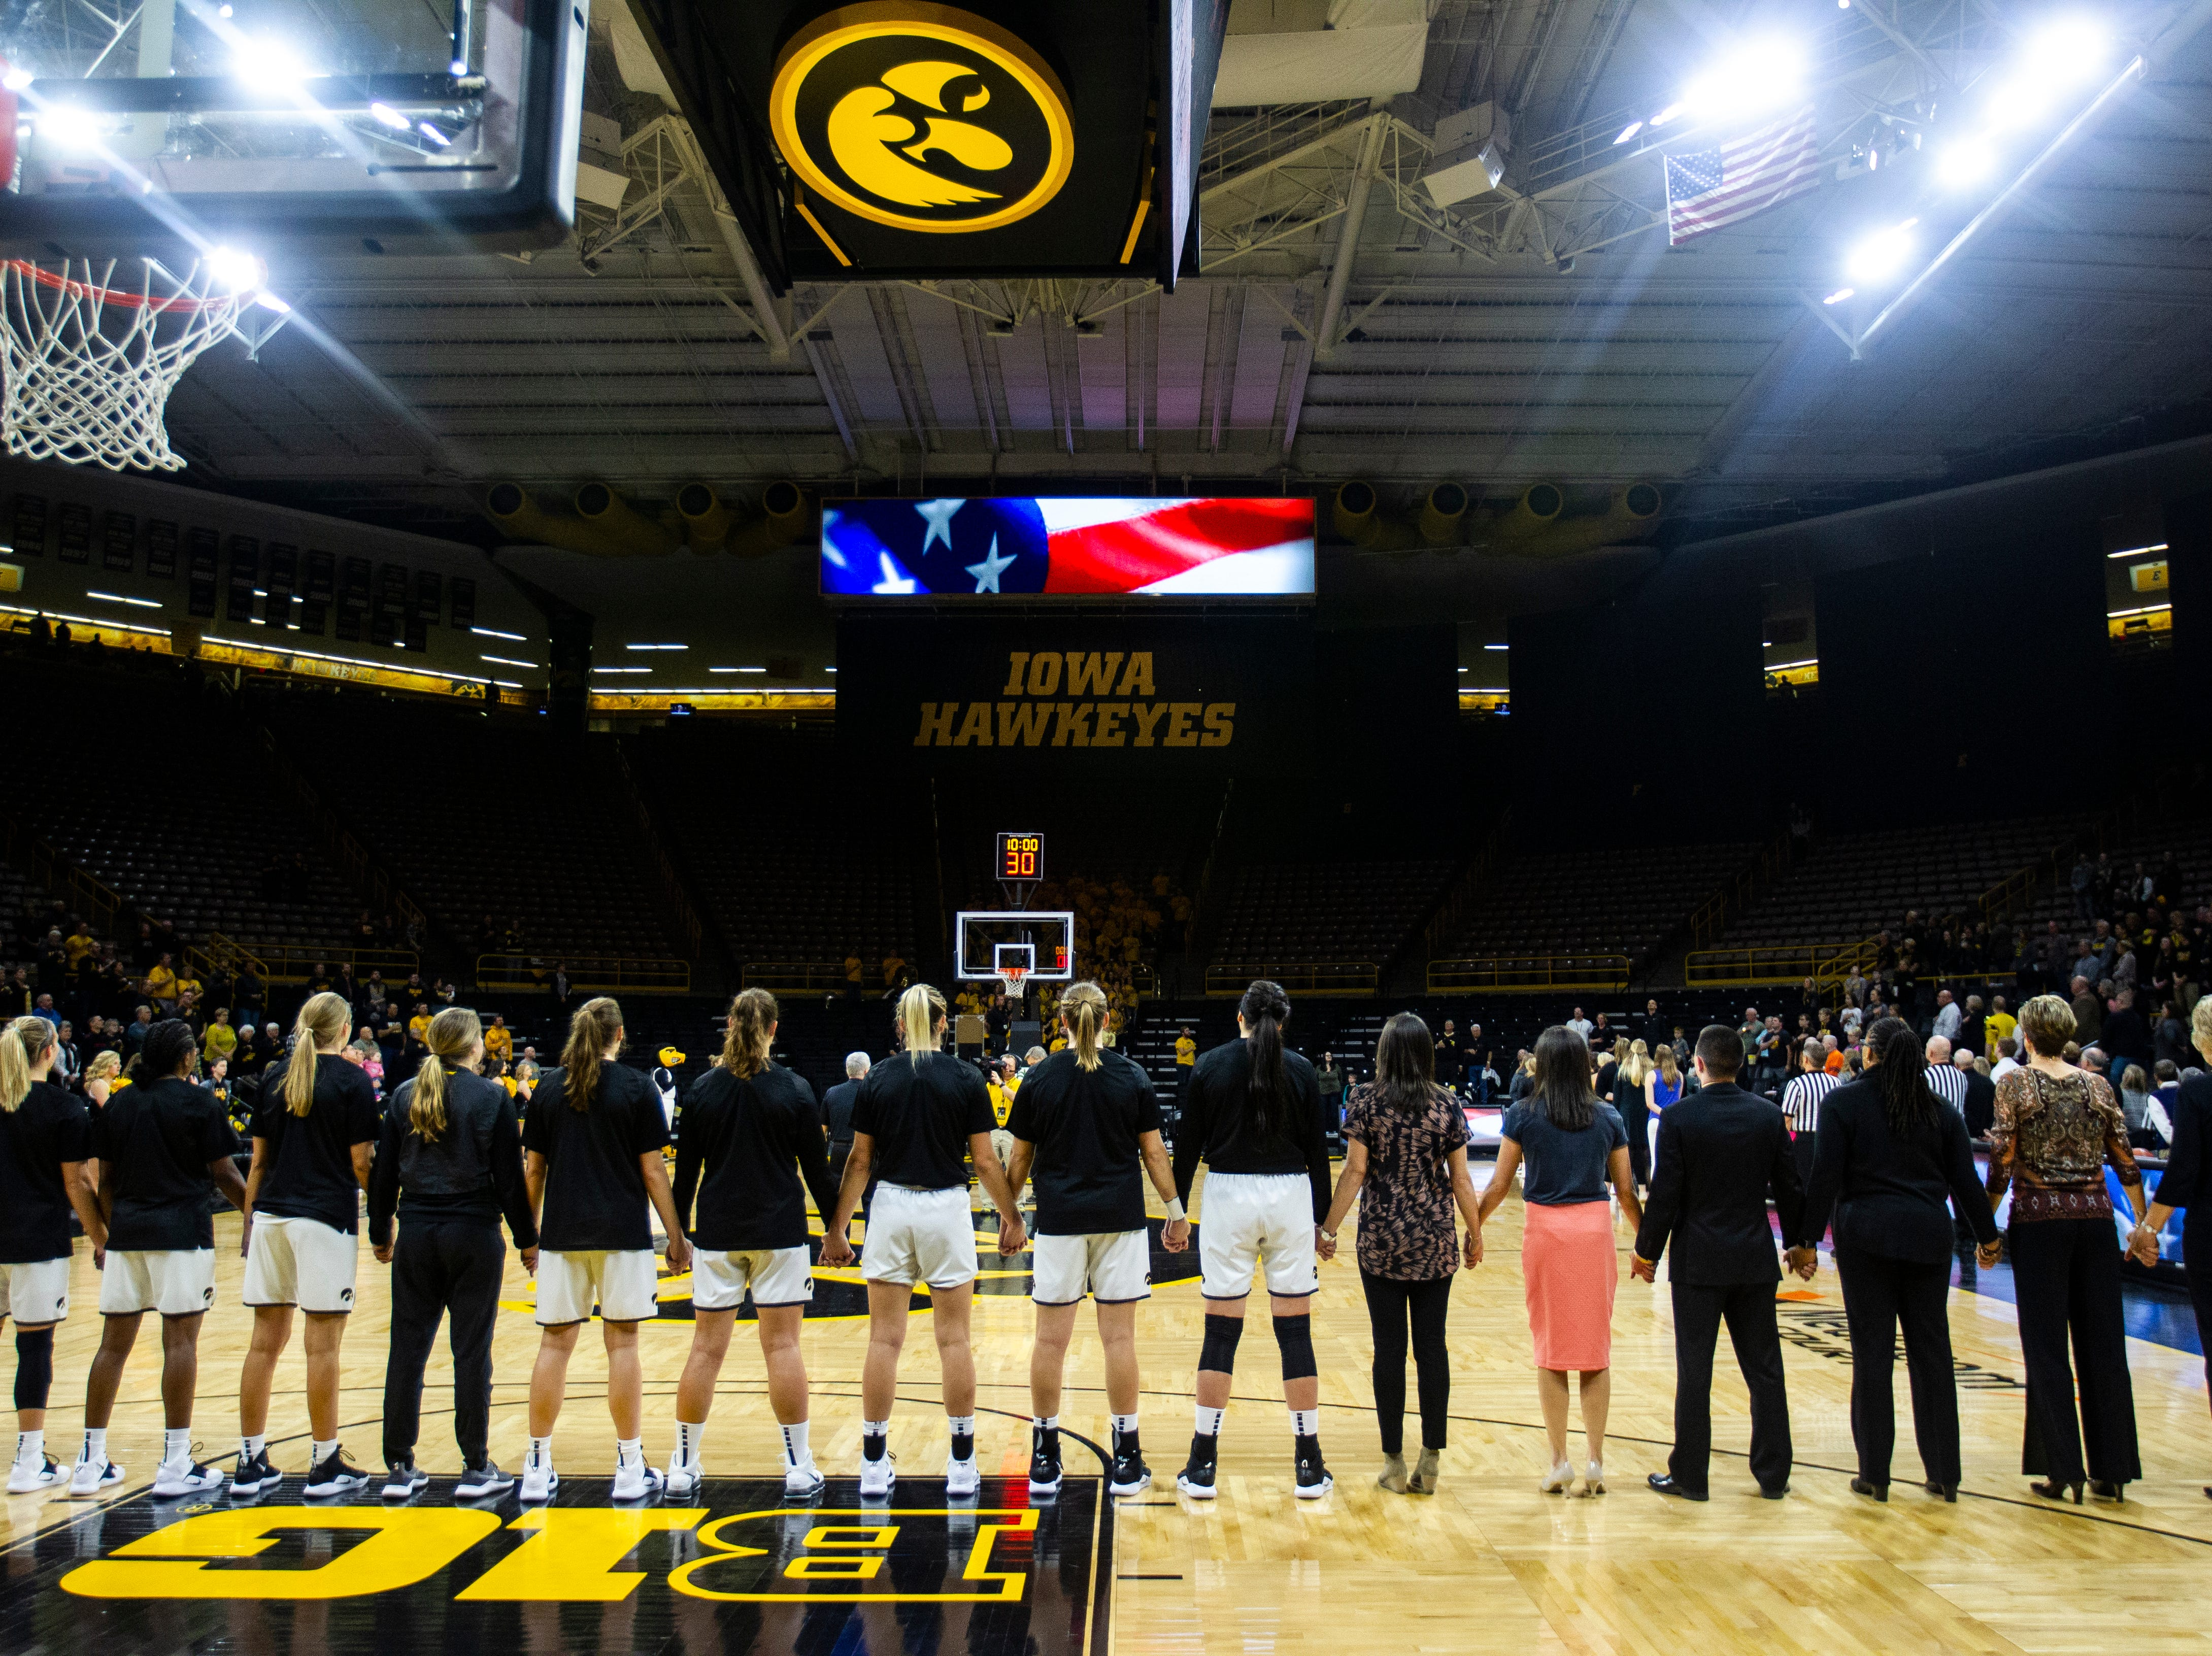 Iowa Hawkeyes line up for the national anthem before a women's basketball exhibition basketball game on Tuesday, Nov. 6, 2018, at Carver-Hawkeye Arena in Iowa City.